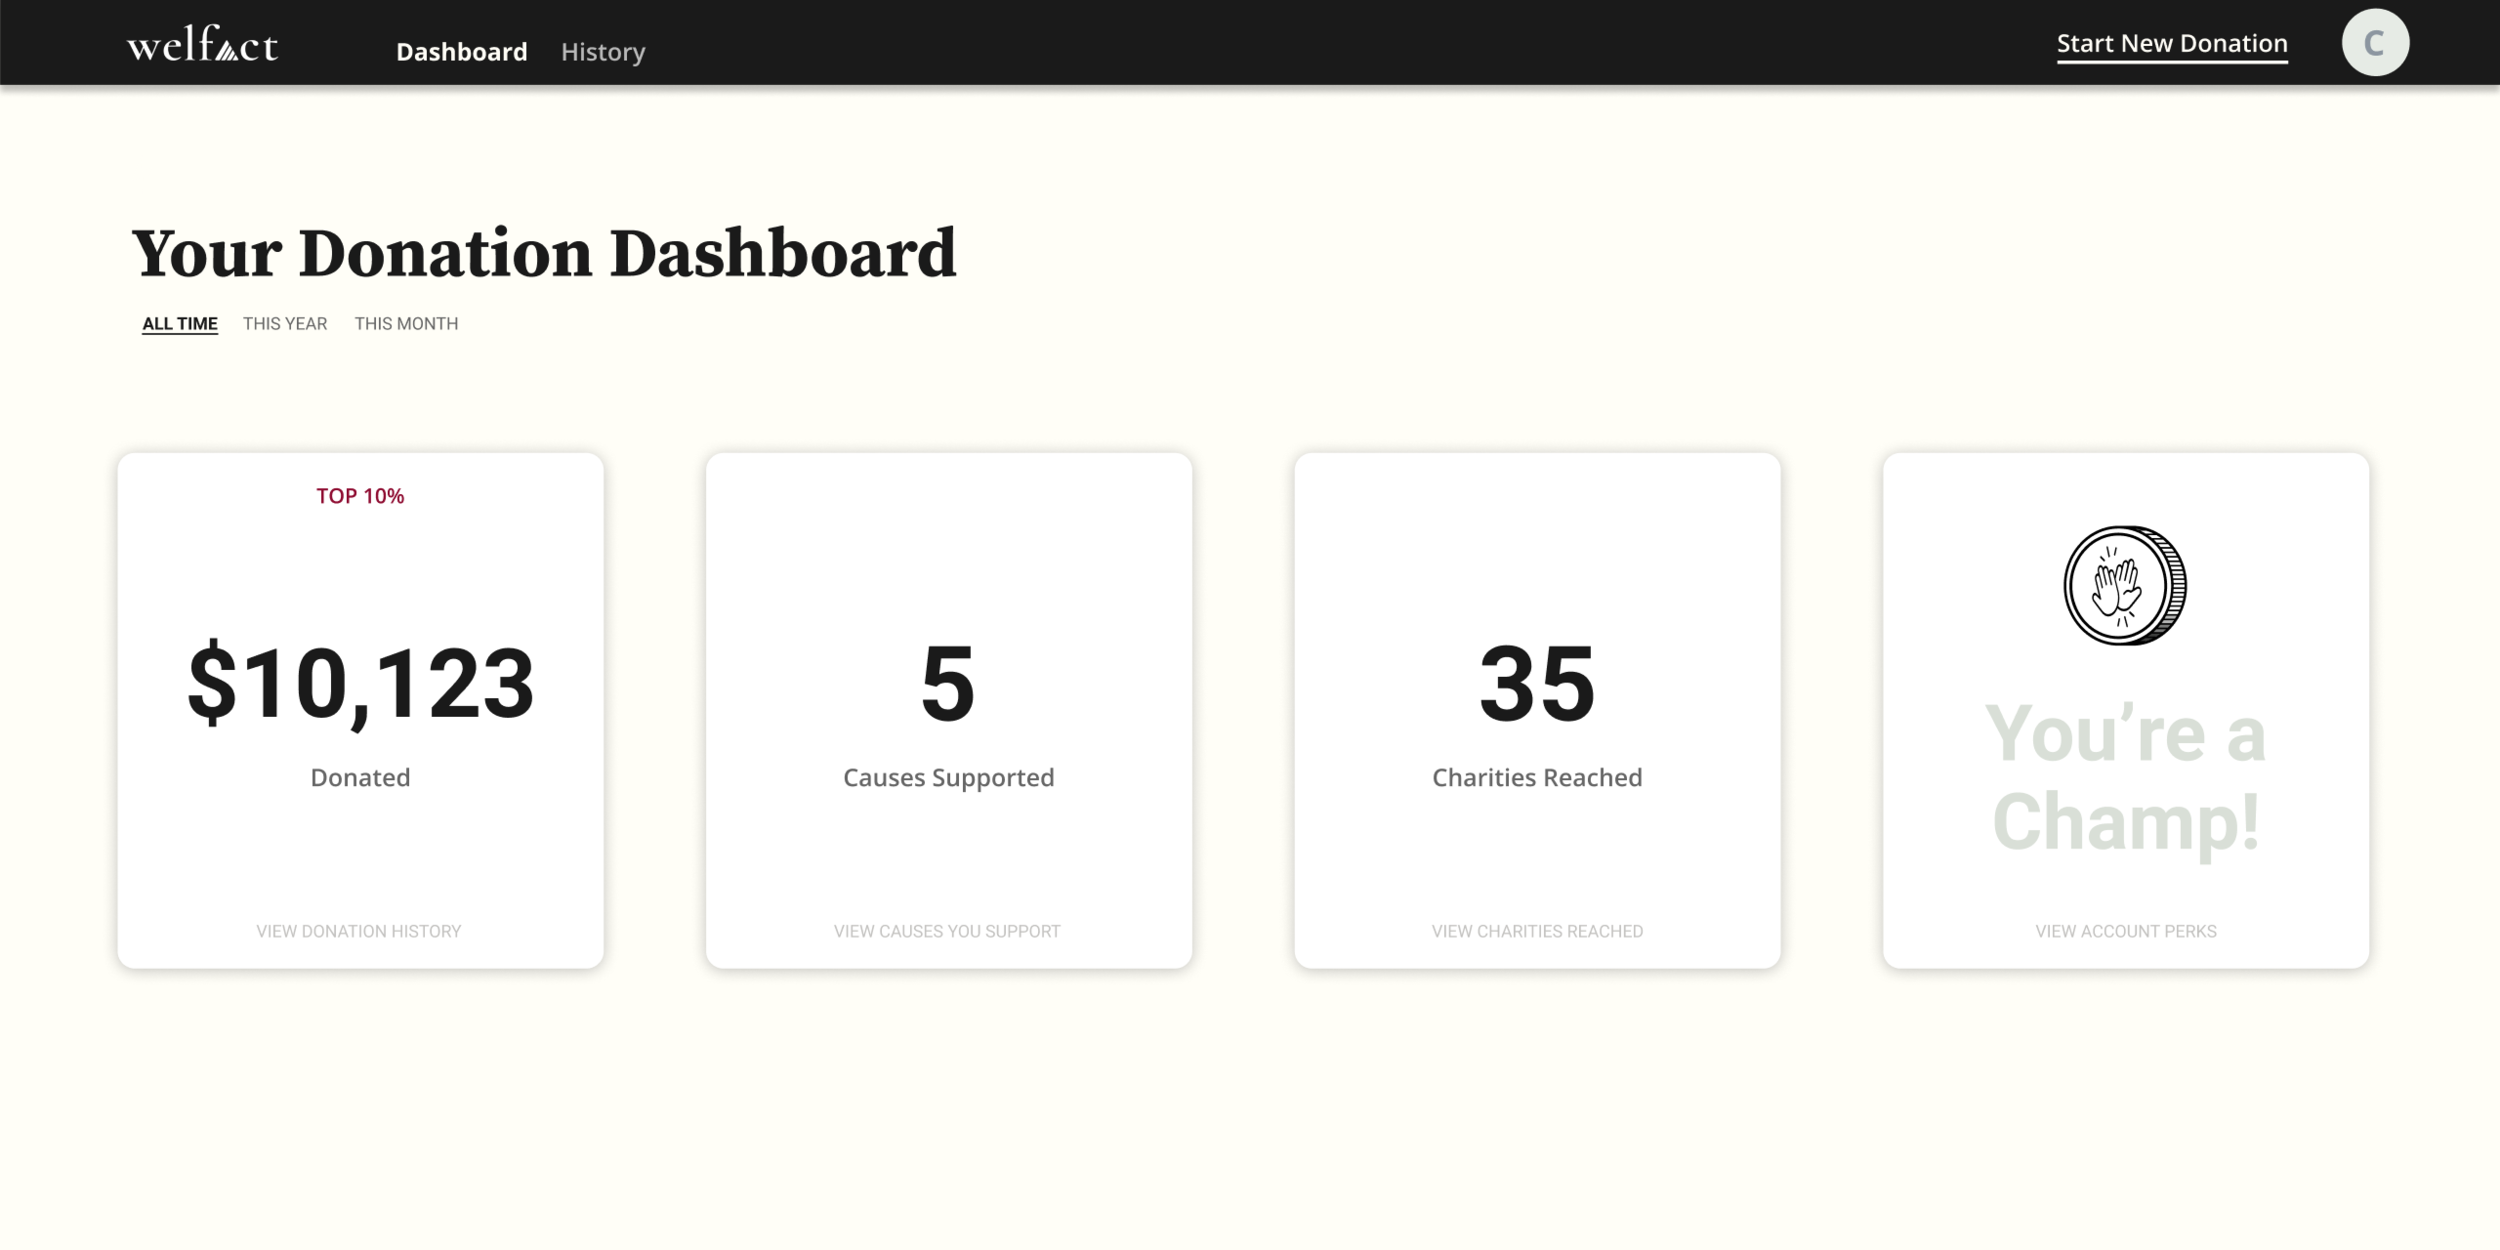 Welfact Donation Dashboard - After